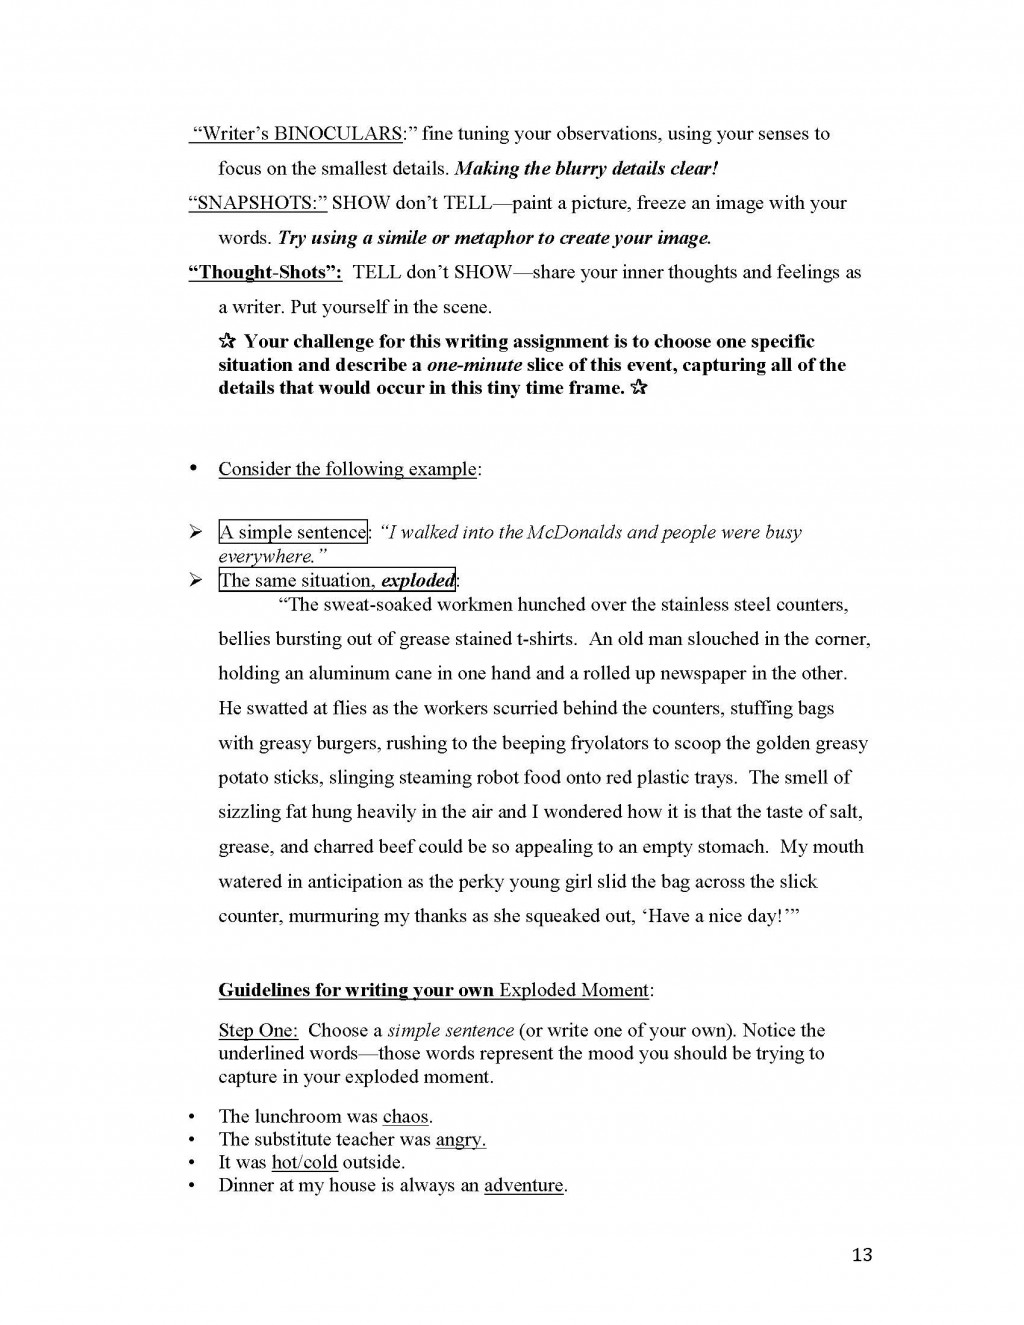 013 Essay Example Literacy Narrative Introduction Paragraph Of Service Good Examples Unit 1 Instructor Copy Pa Format How To Start Phenomenal Personal Sample Digital Large